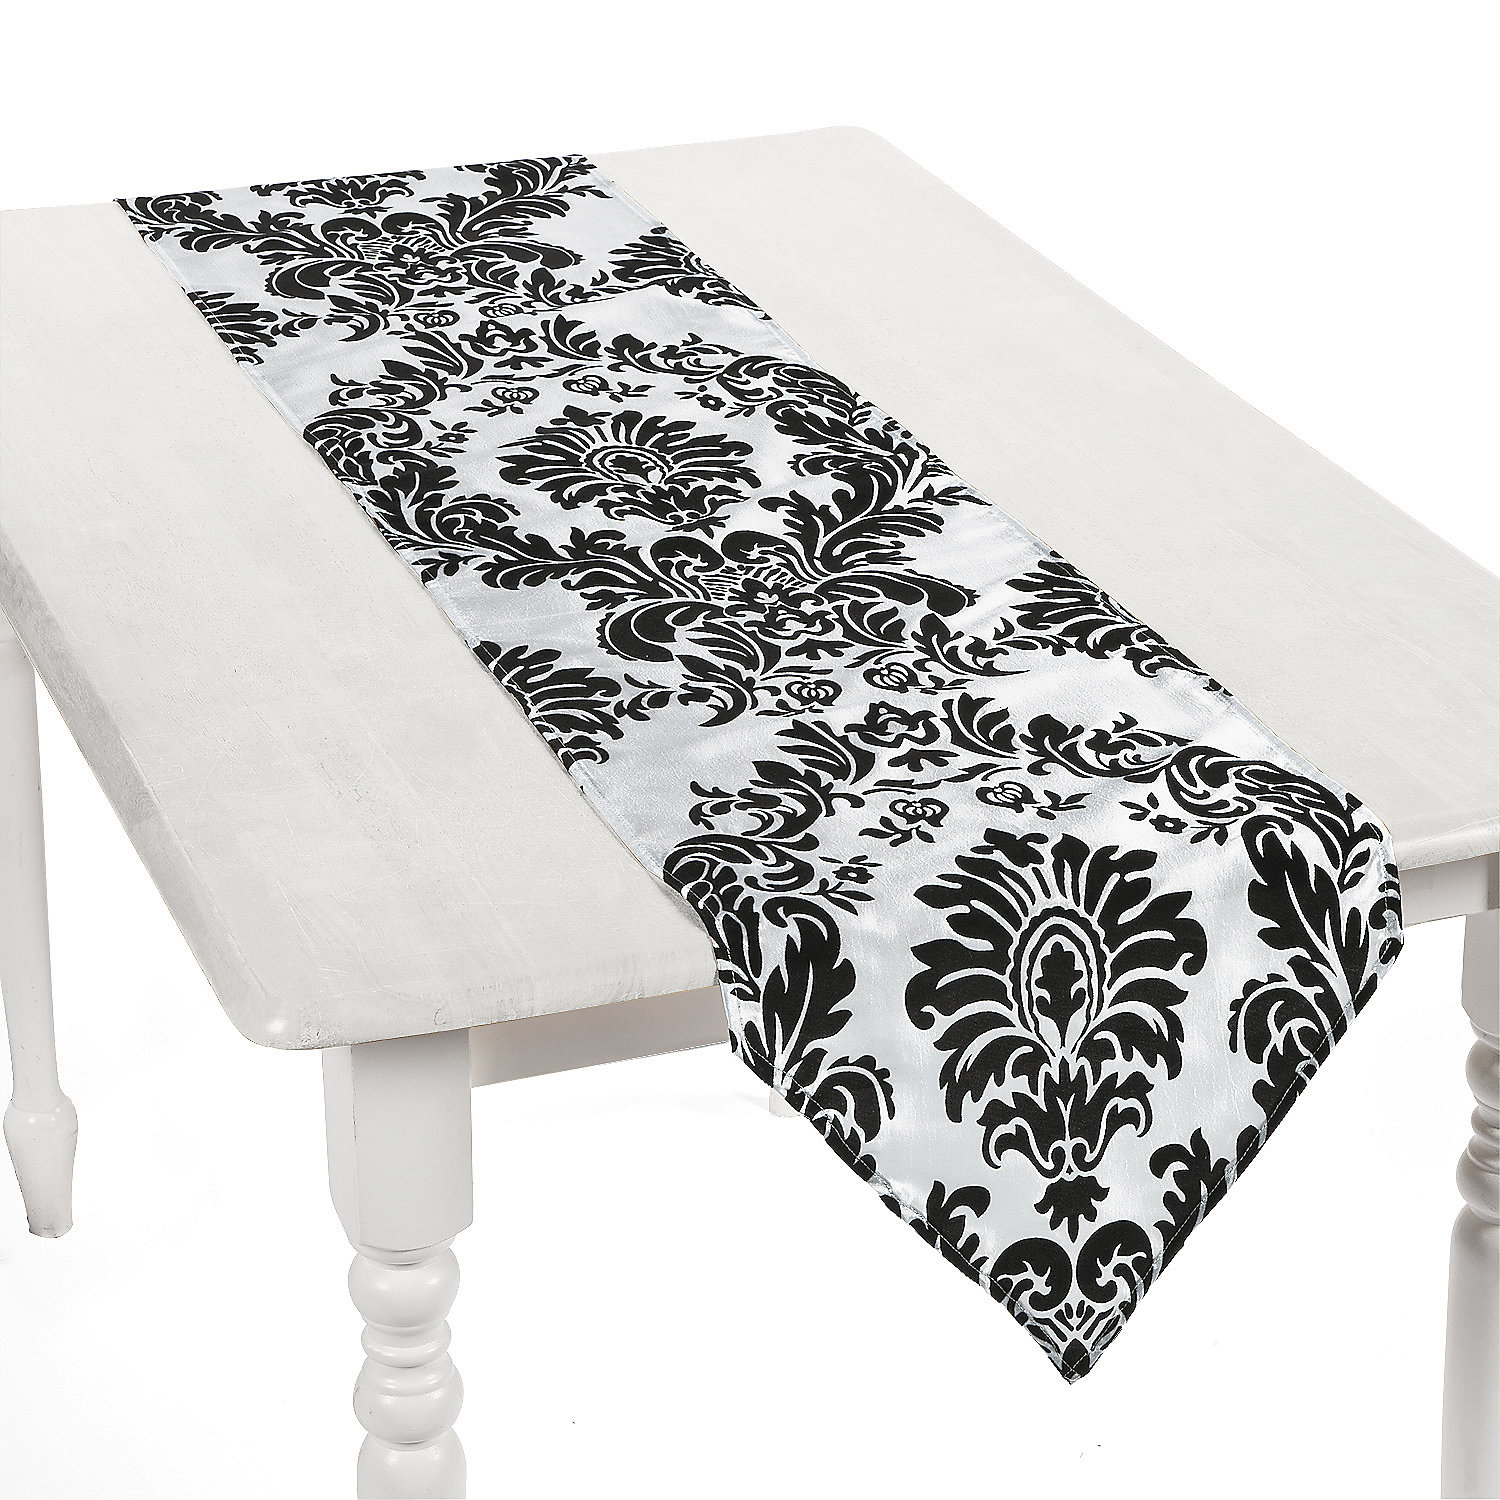 Shop for Table Runners in Table Linens. Buy products such as Sticky Toffee Cotton Woven Table Runner with Fringe, Traditional Diamond, Gray, 14 in x 72 in at Walmart and save.